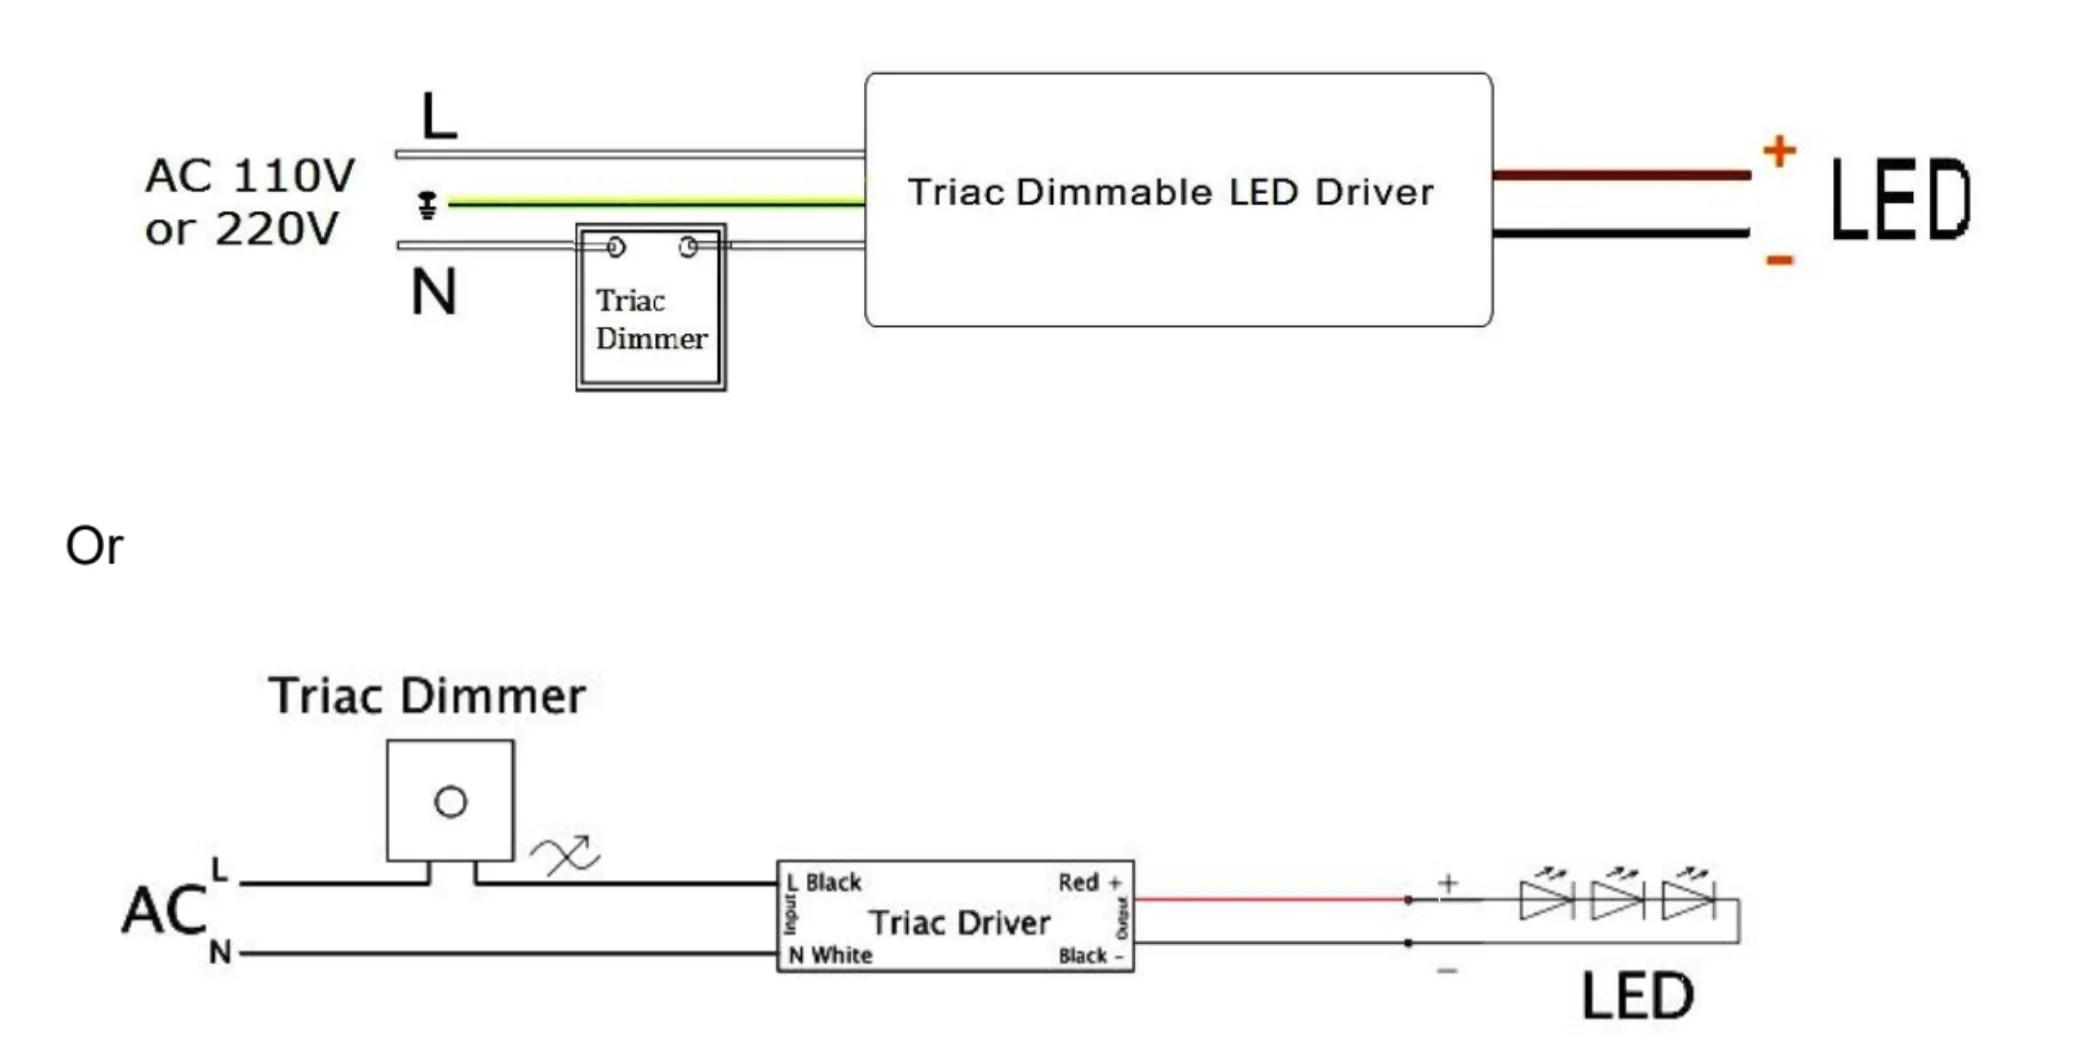 hight resolution of triac dimmable power supply for led strip waveform lighting dimming